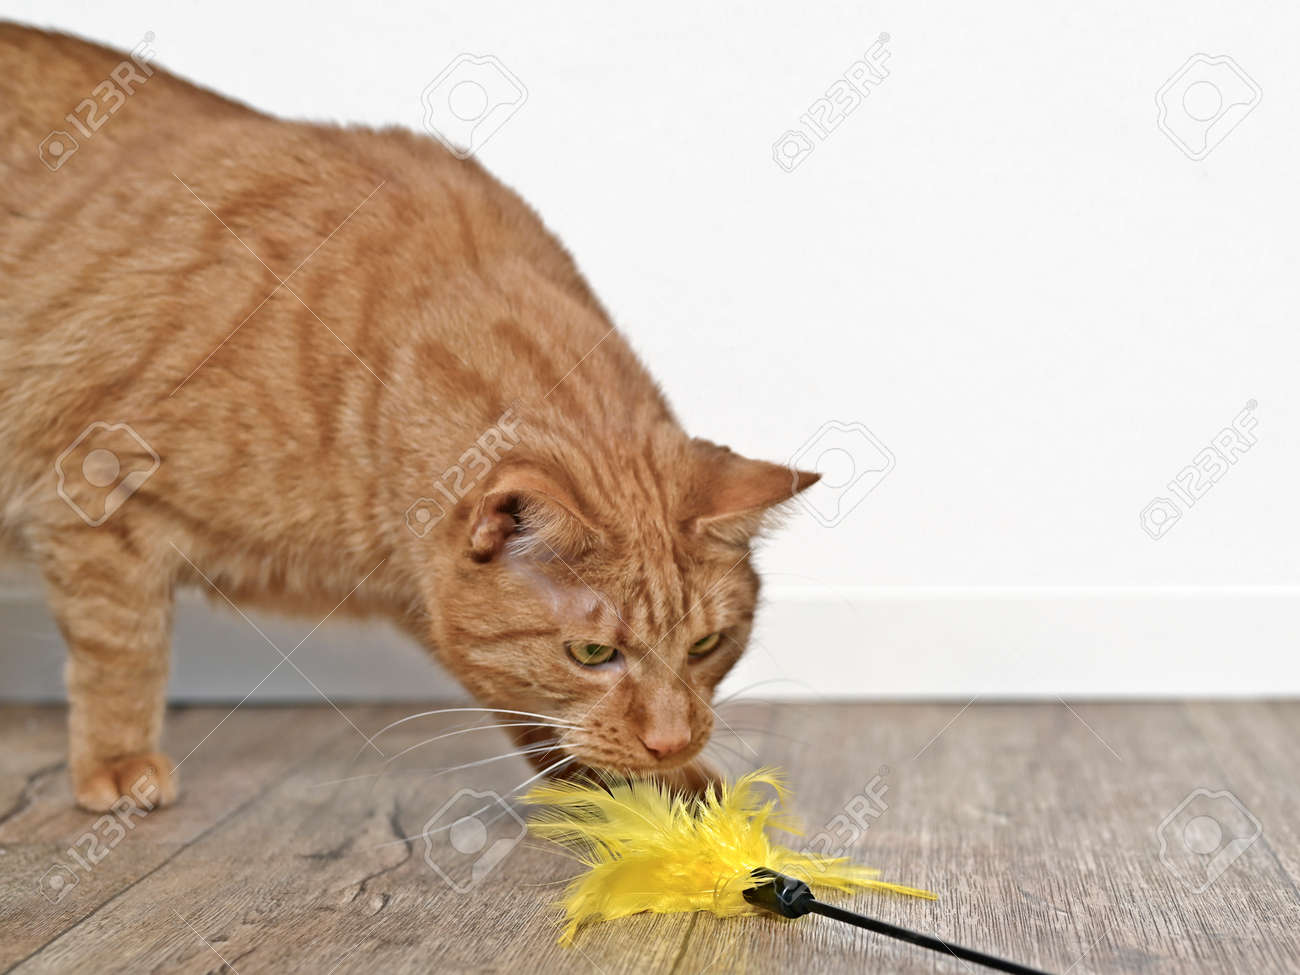 Cute ginger cat playing with a feather cat toy. - 164762512